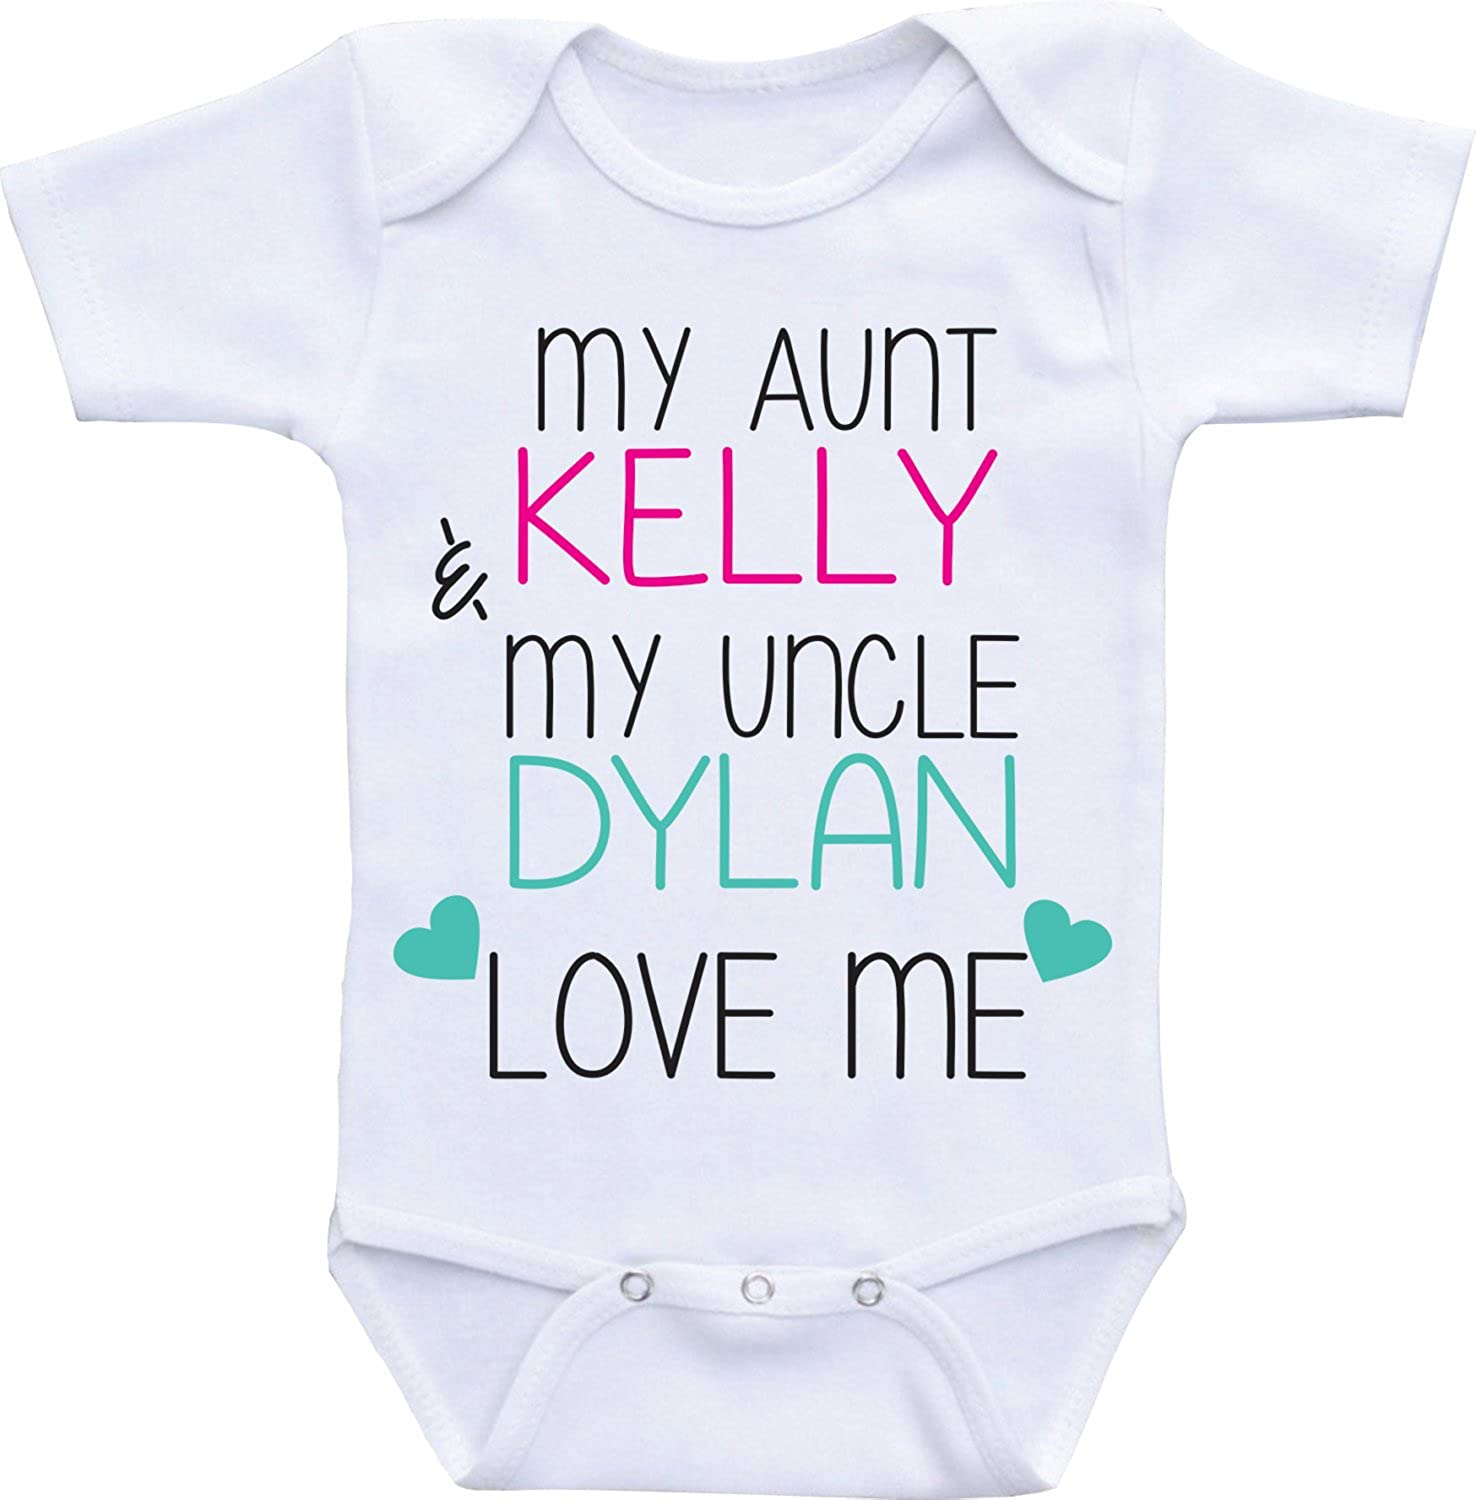 464d00760 Promini Funny Baby Onesie My Aunt and Uncle Love Me Baby Bodysuit:  Amazon.ca: Clothing & Accessories